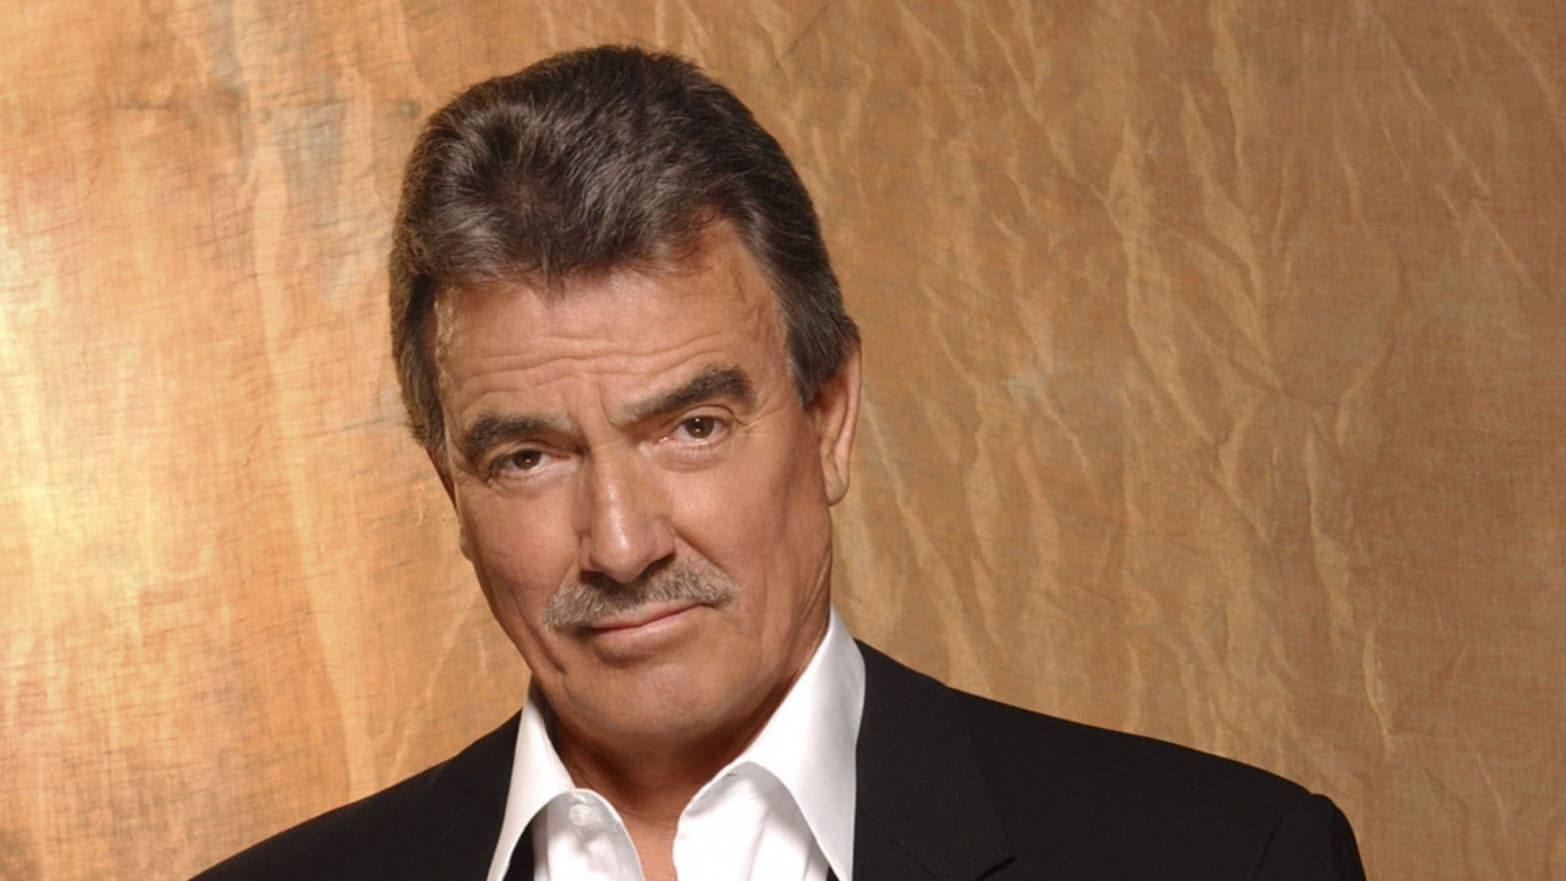 Victor Newman Slams Trump: Y&R's Eric Braeden on the 'Clown